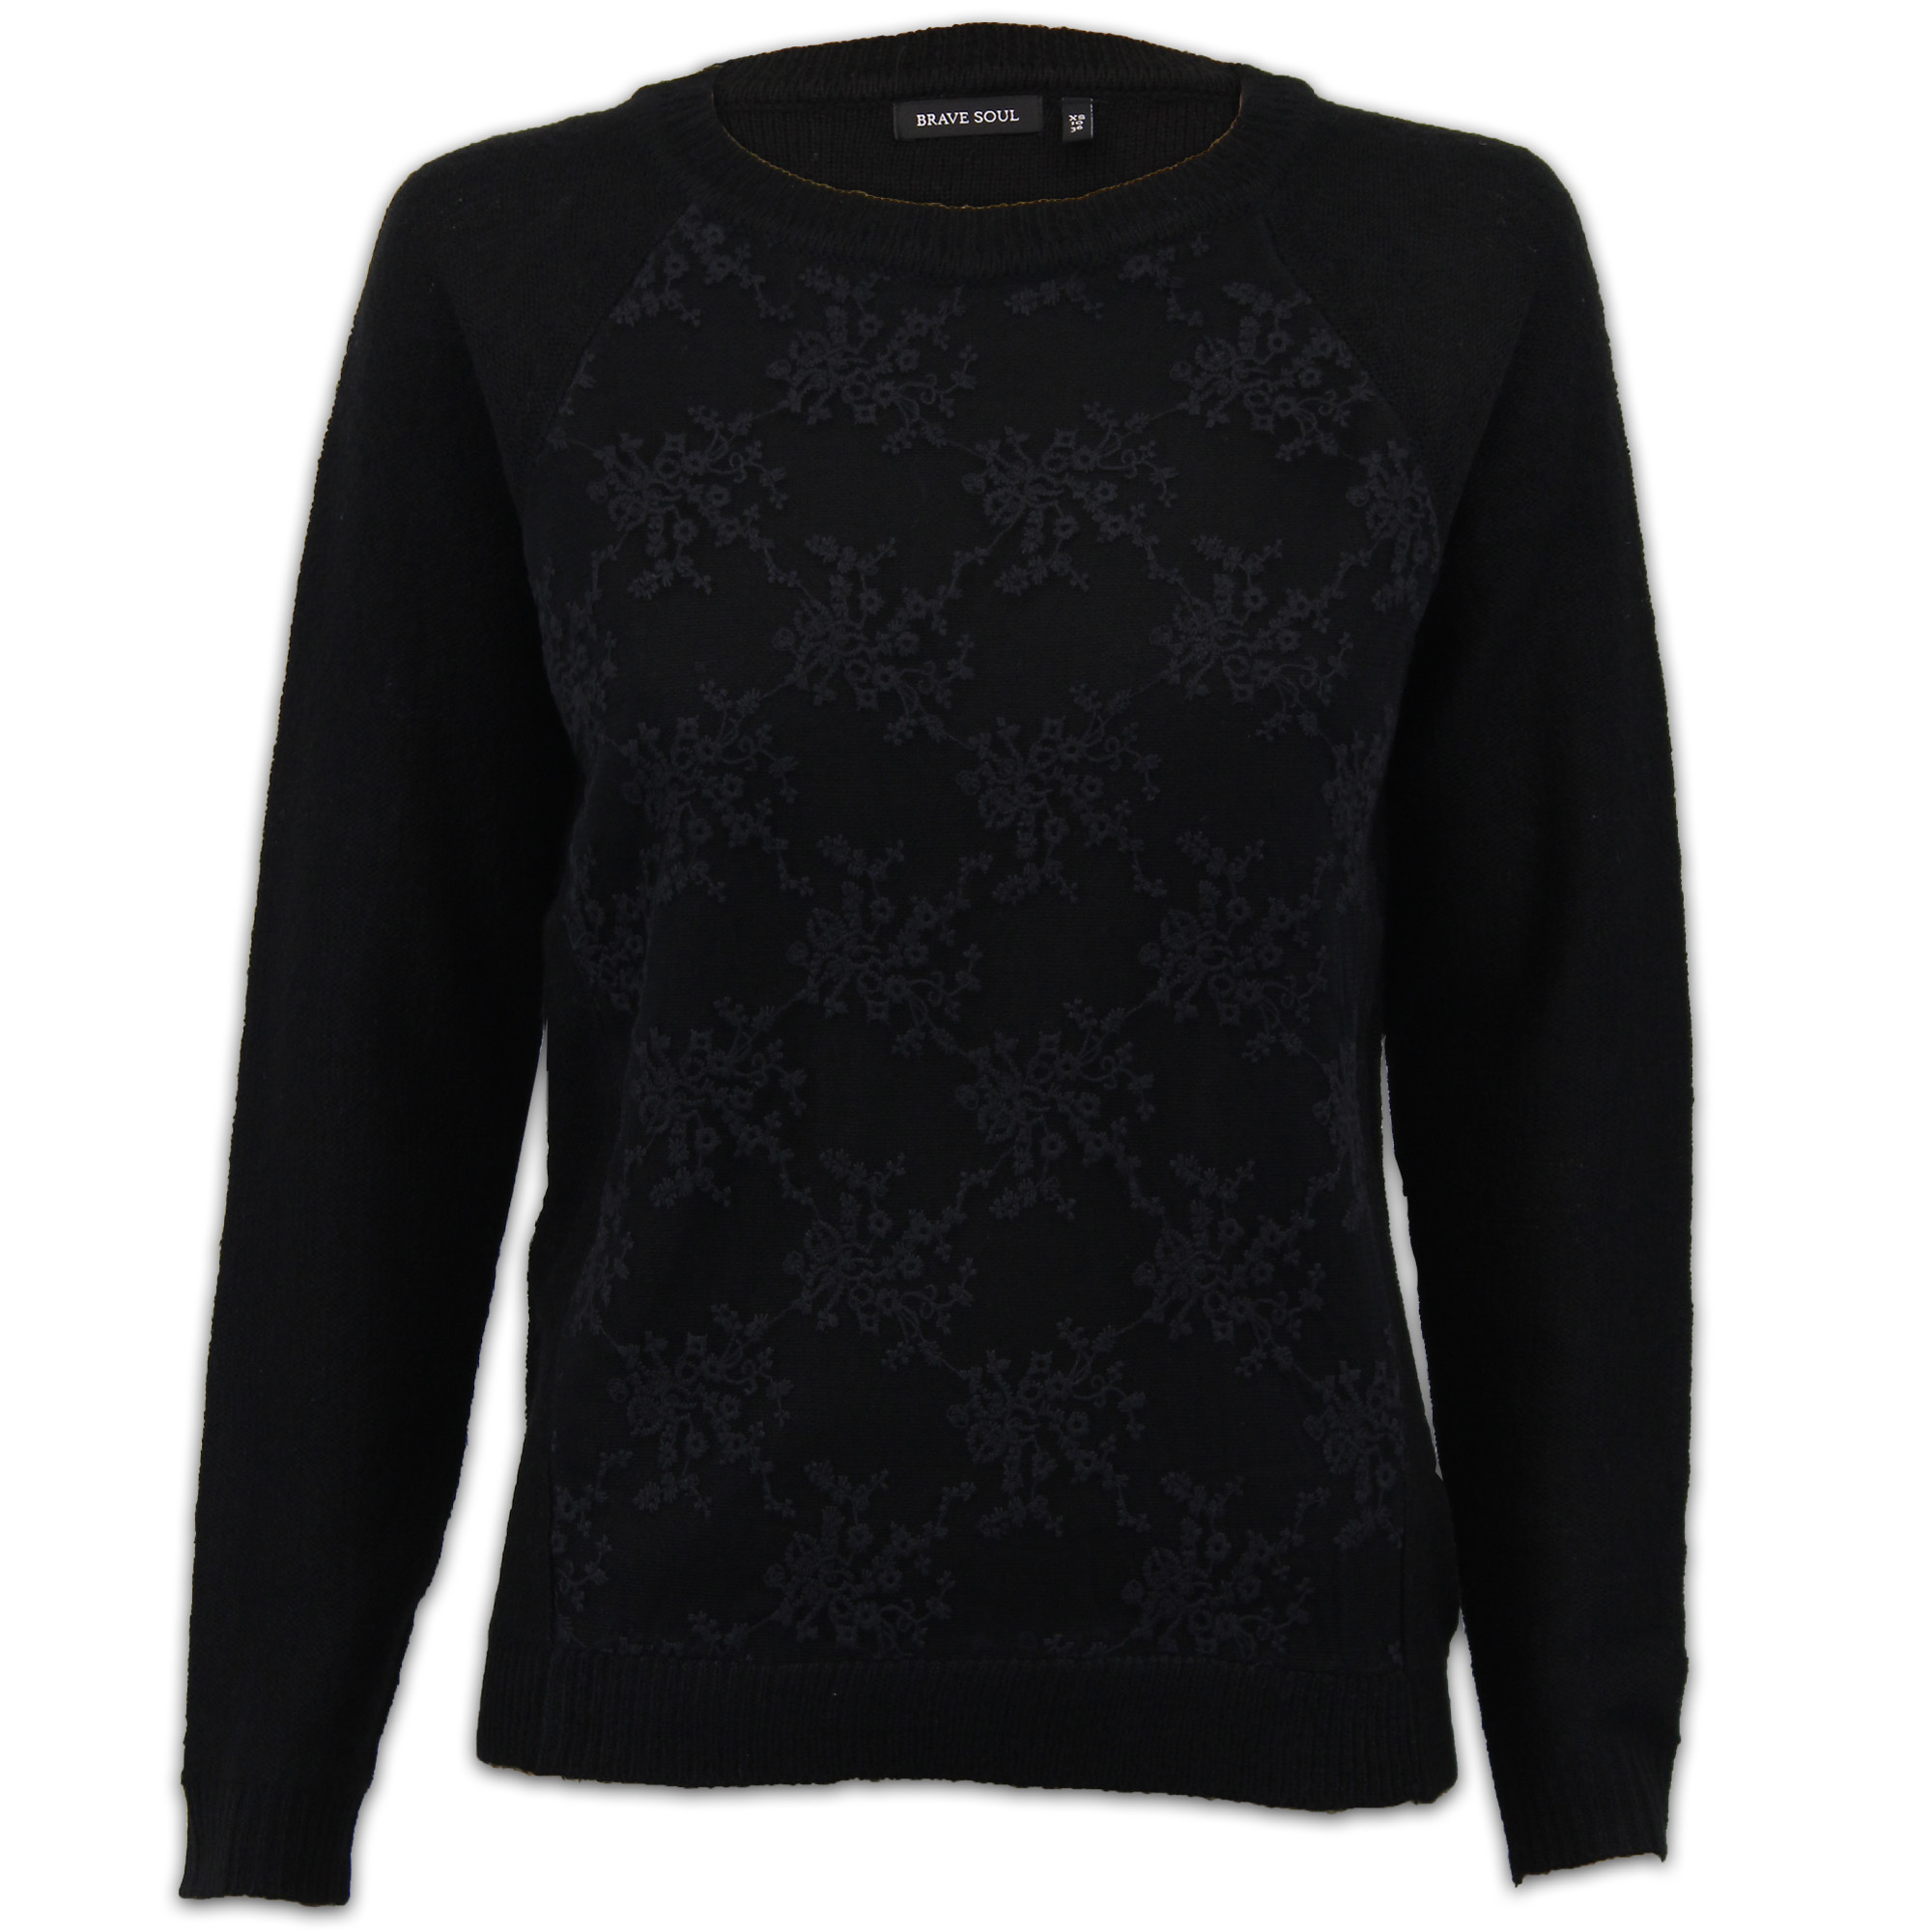 b5a21ad734d Details about Ladies Jumpers Brave Soul Womens Knit Mesh Lace Top Crew Neck  Winter Party New